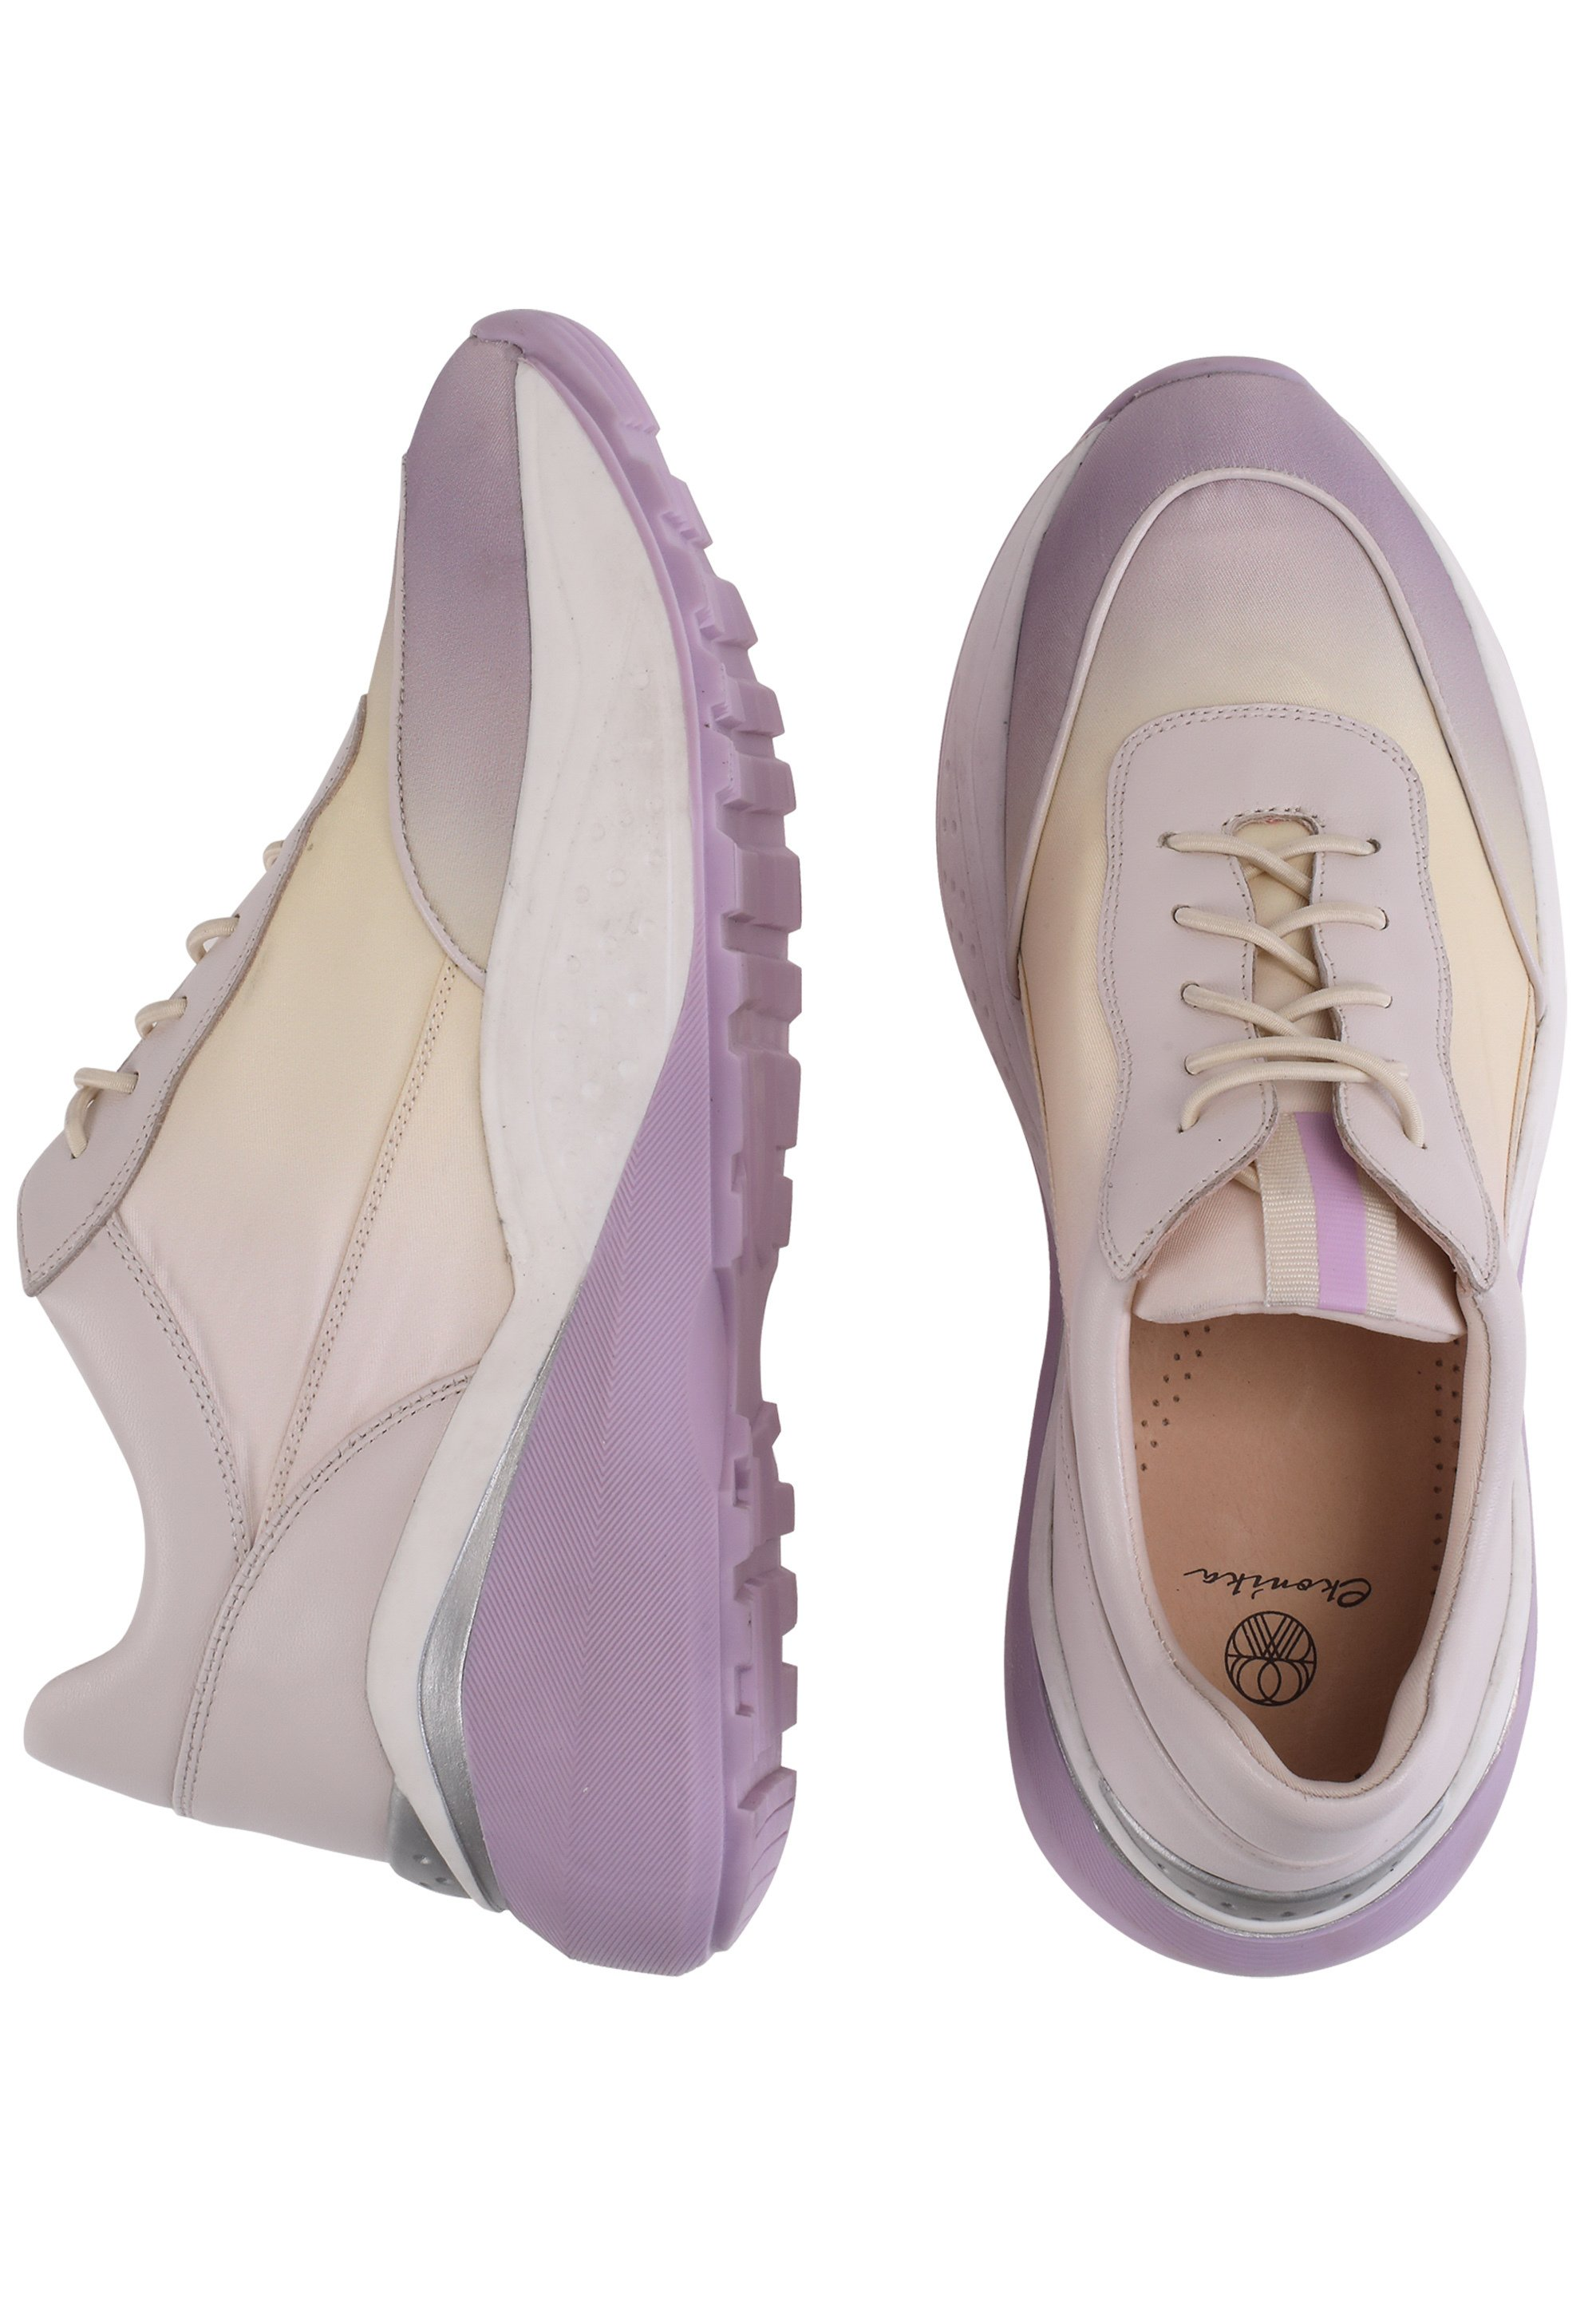 Ekonika Sneaker Low - Yellow-violet Black Friday